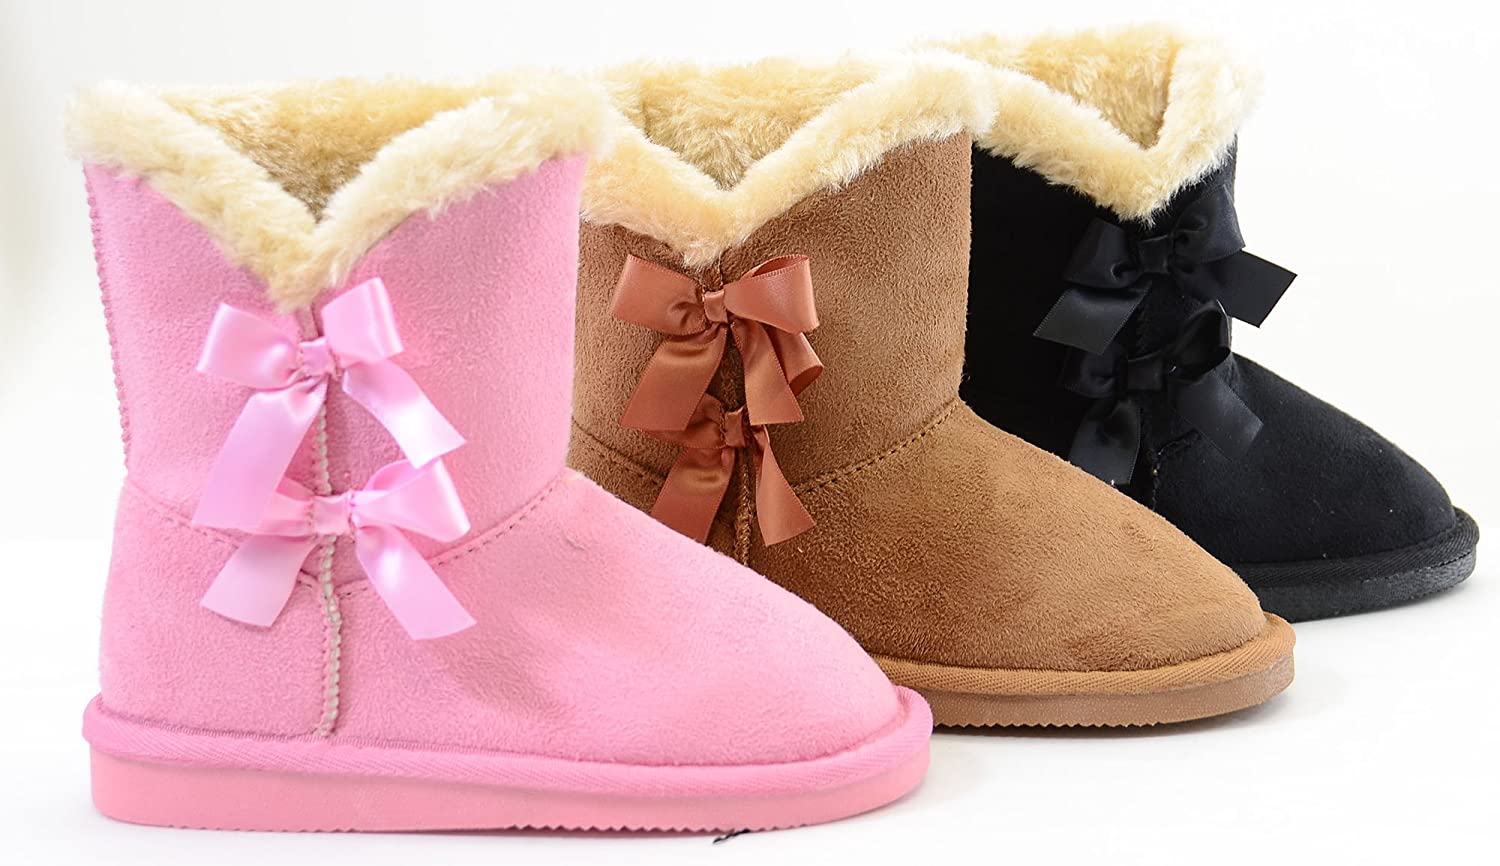 Fourever Funky Pour Fille Nœuds Shearling Vegan Daim Fourrure Bottes - Rose - A Pink bjU017,